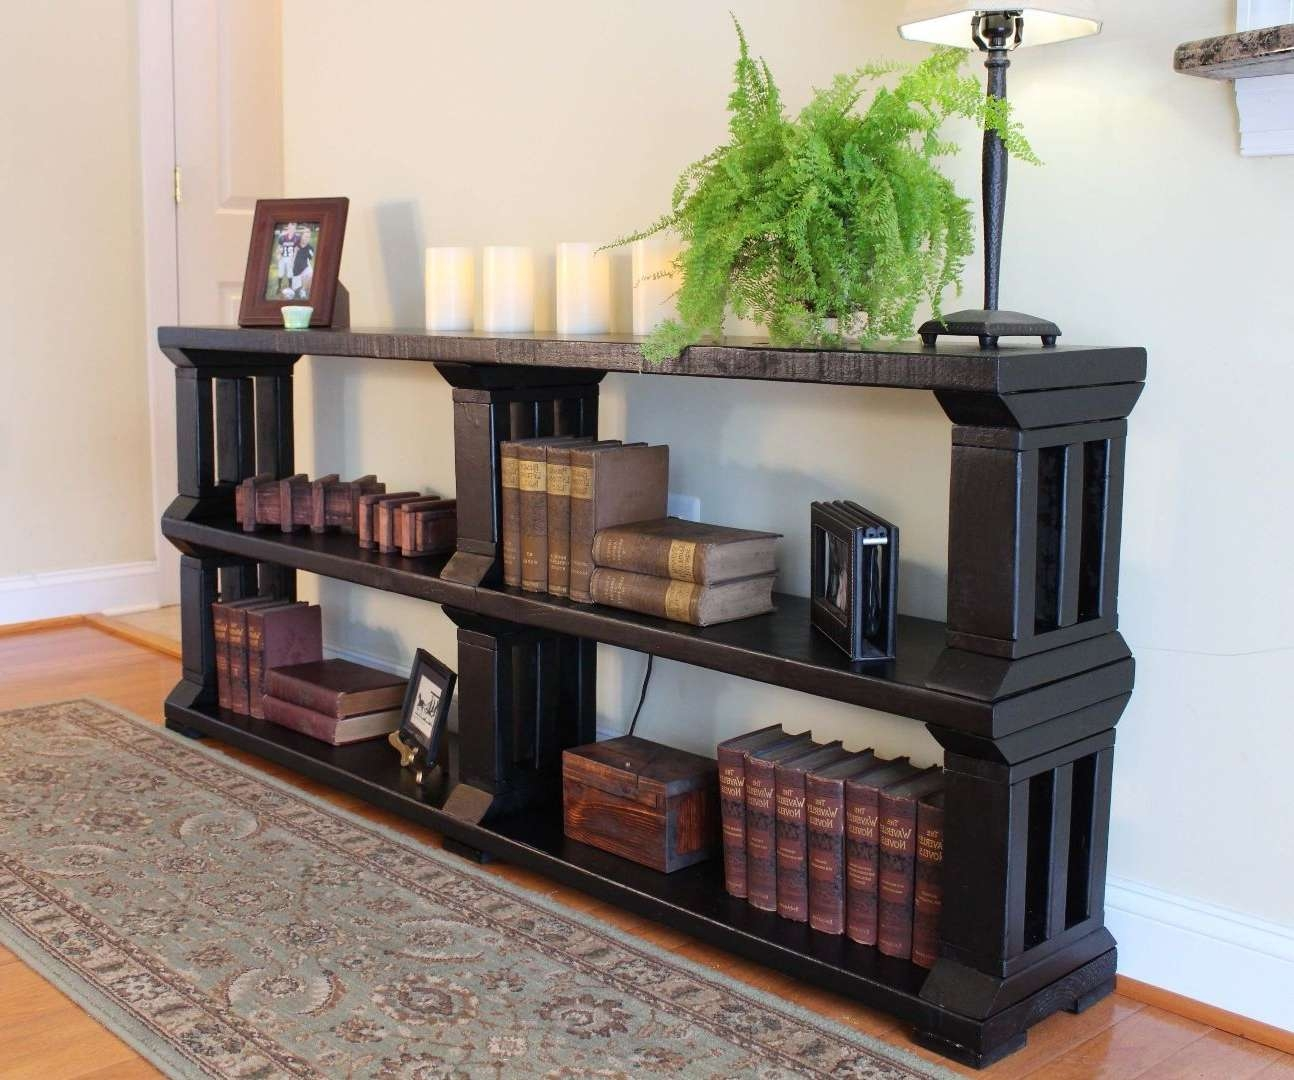 Rustic Book Shelf Or Tv Stand: 13 Steps (With Pictures) Pertaining To Bookshelf And Tv Stands (View 7 of 15)